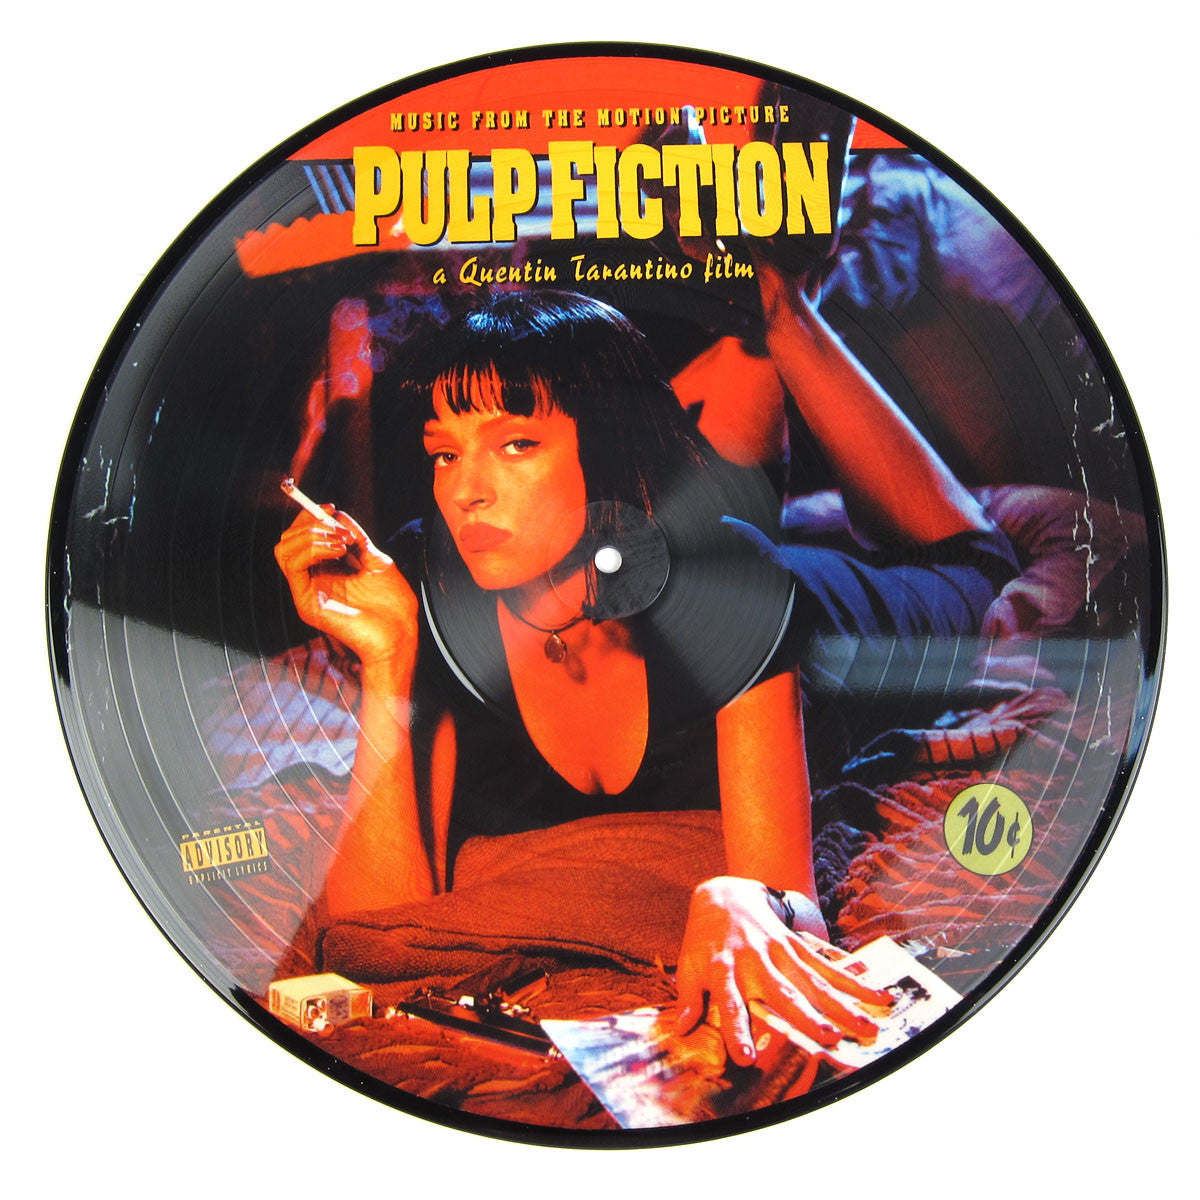 Pulp Fiction: Music From The Motion Picture (Picture Disc) Vinyl LP